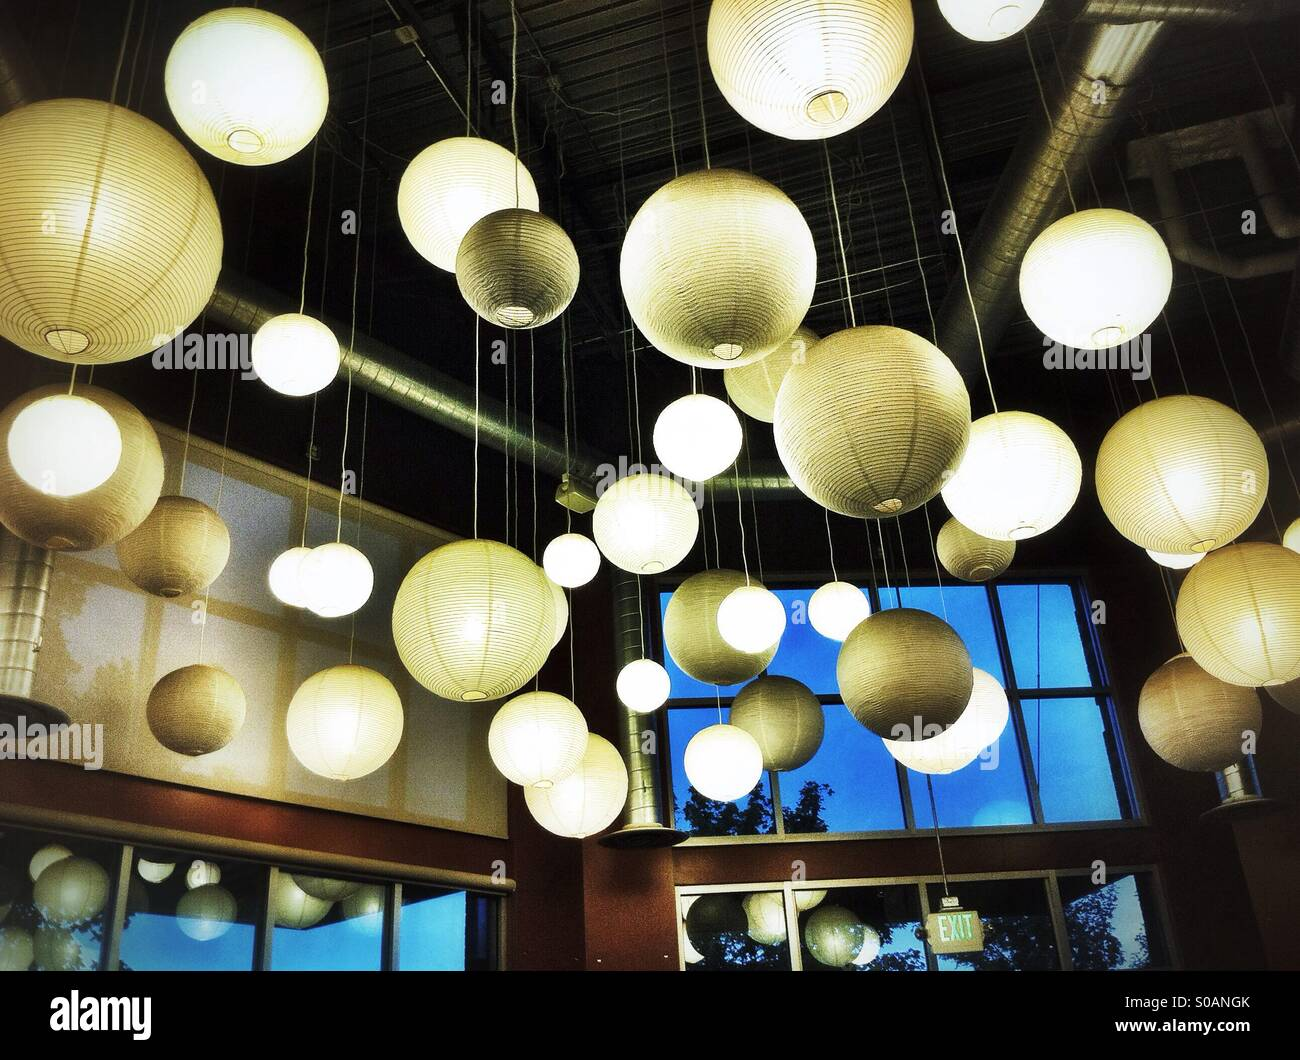 Dozens of white round paper lanterns hanging from the ceiling